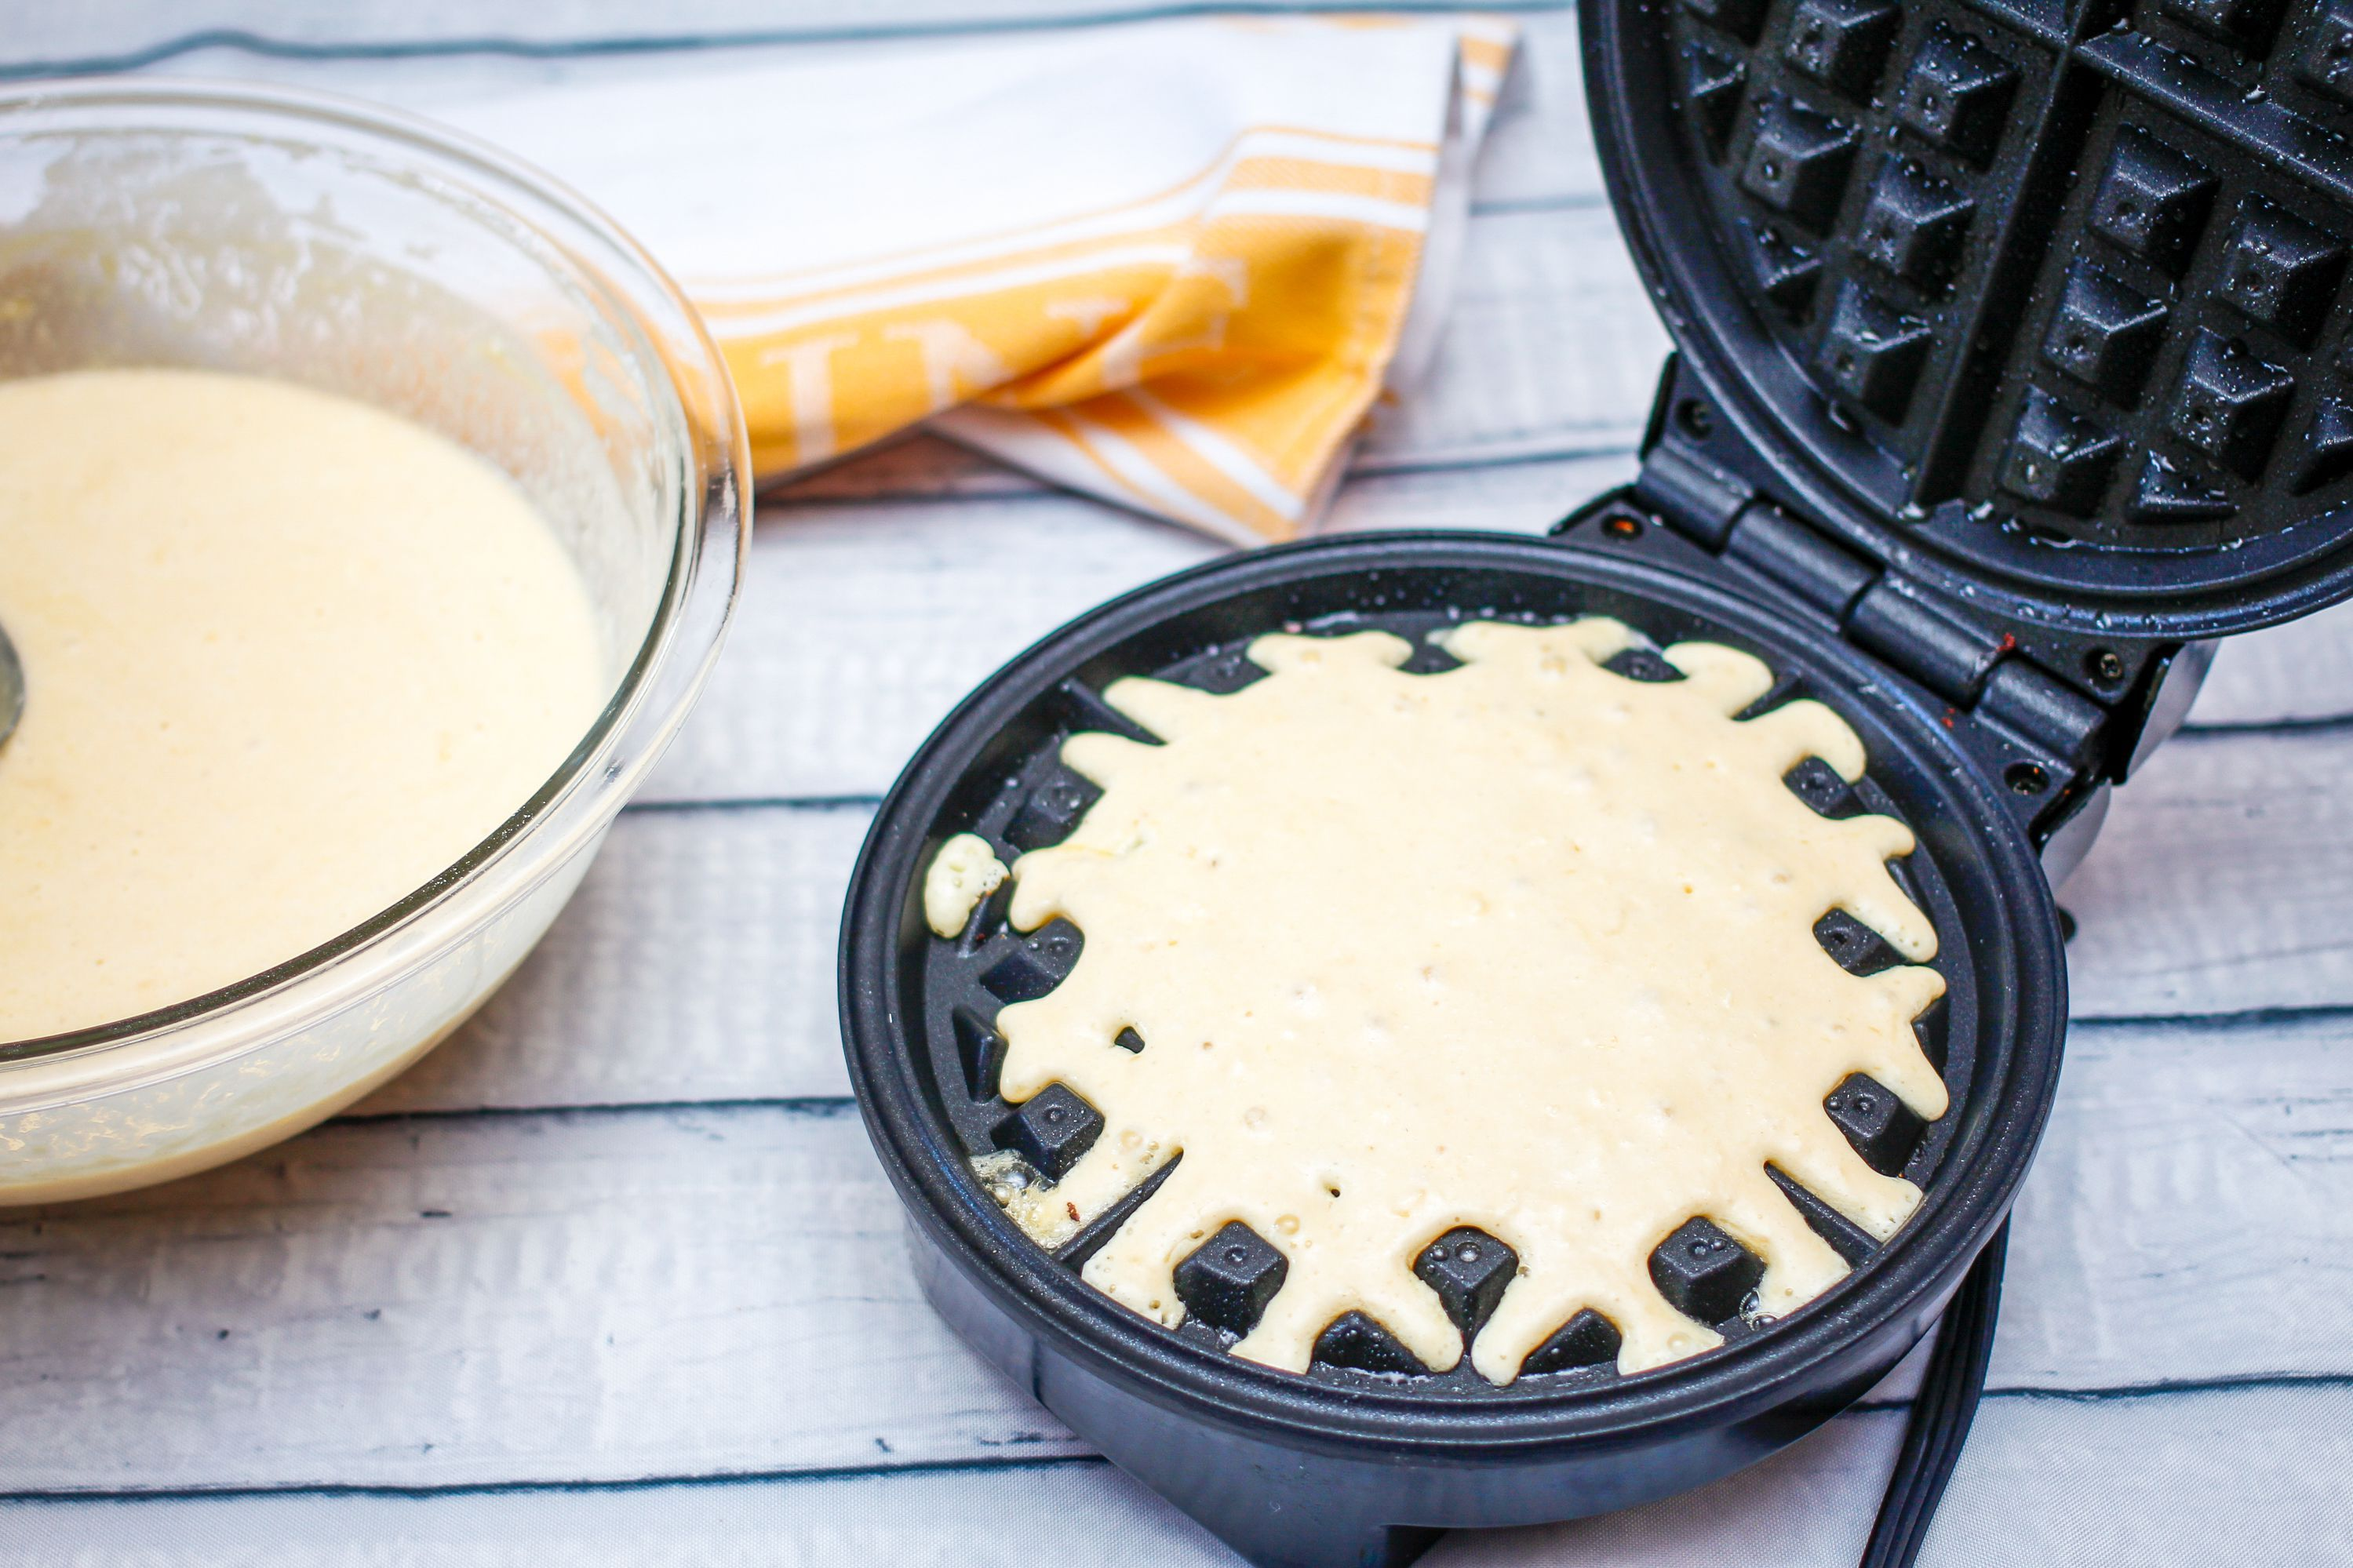 How to properly clean a waffle maker waffles maker